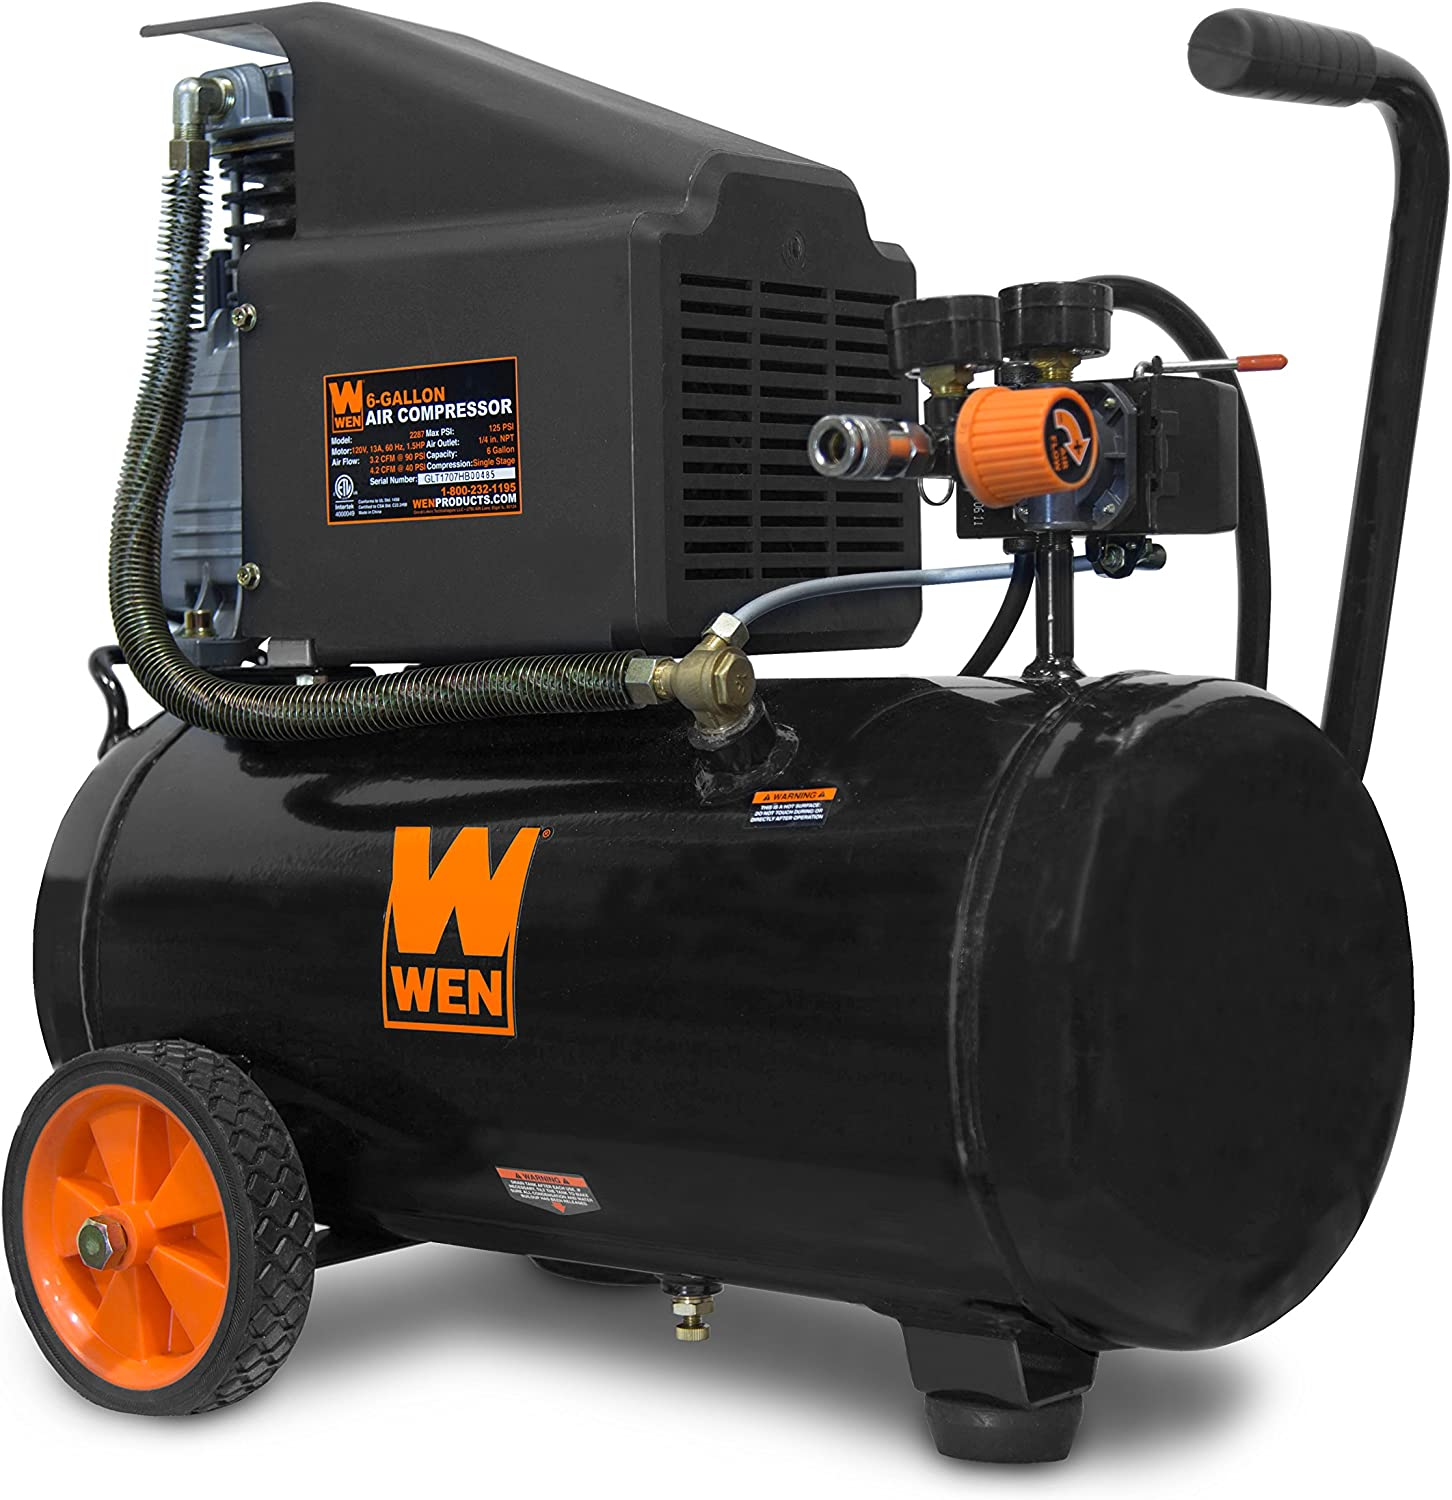 WEN 2287 Oil-Lubricated Portable Horizontal Air Compressor